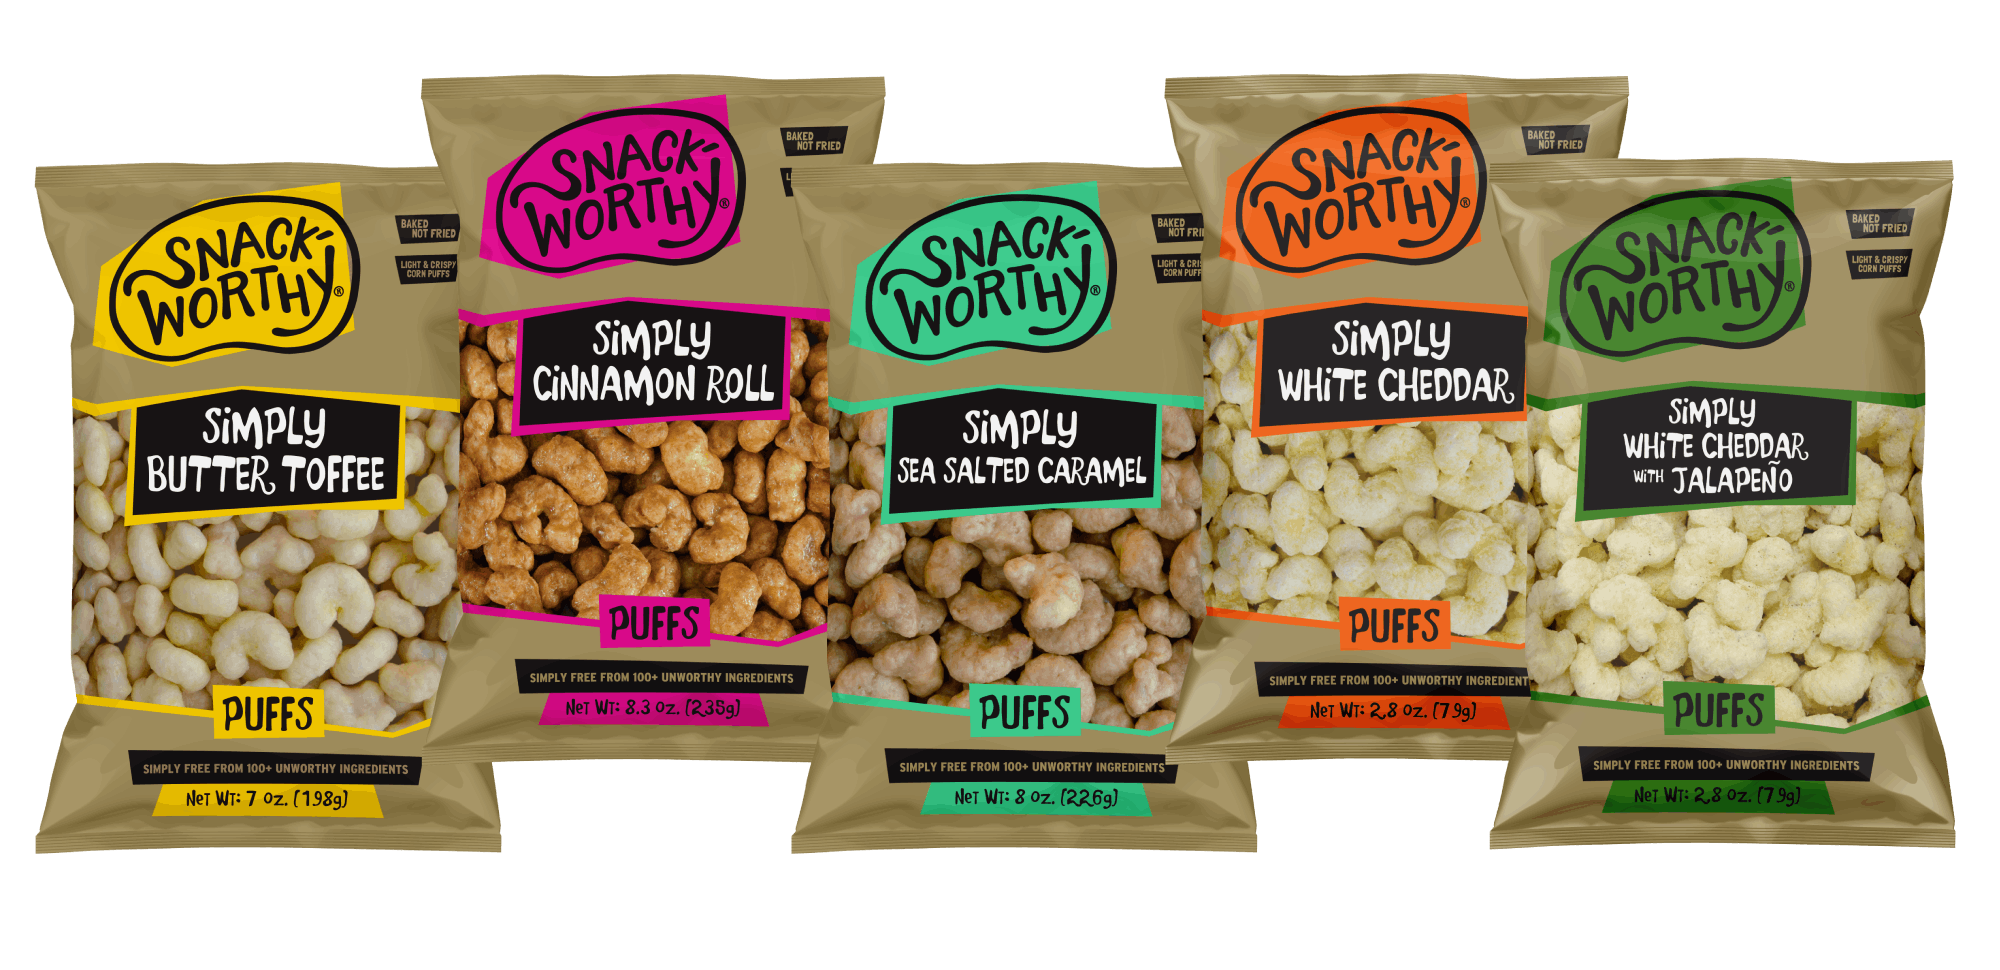 Our new simply puffs flavors displayed in their Snackworthy branded bags